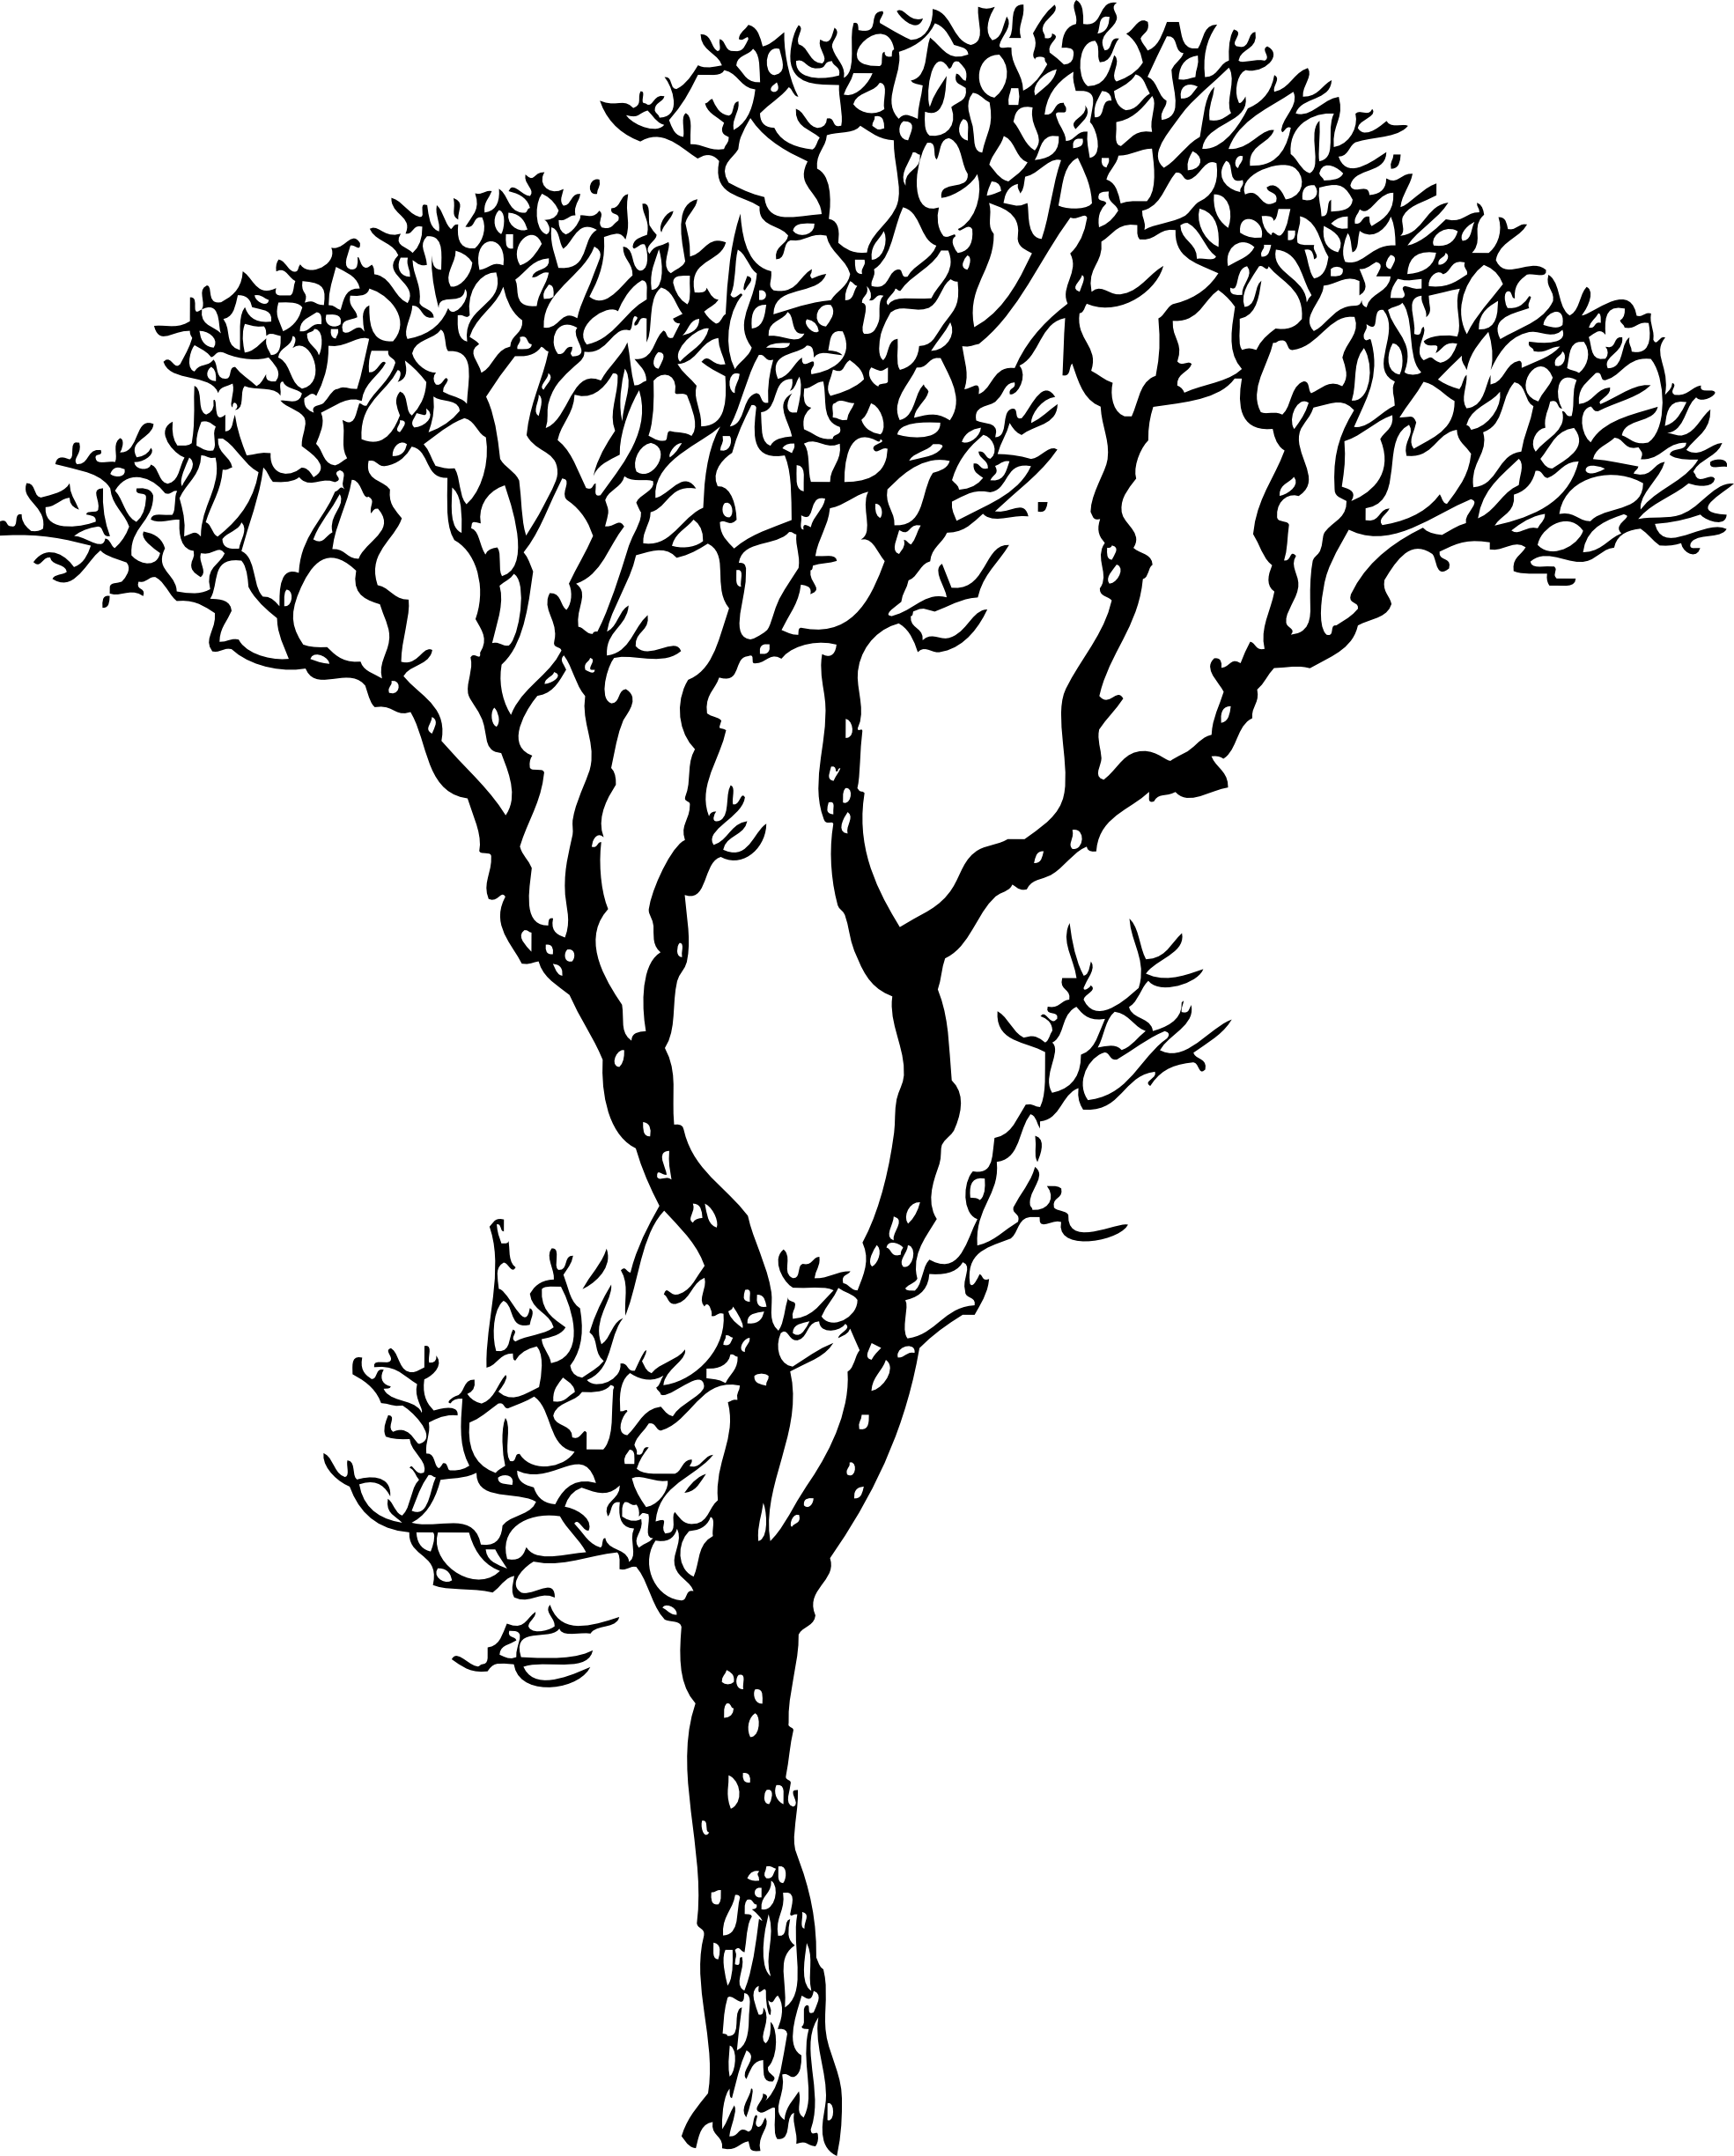 Bare Tree Black White Line Art Coloring Book Colouring Letters ... vector transparent stock